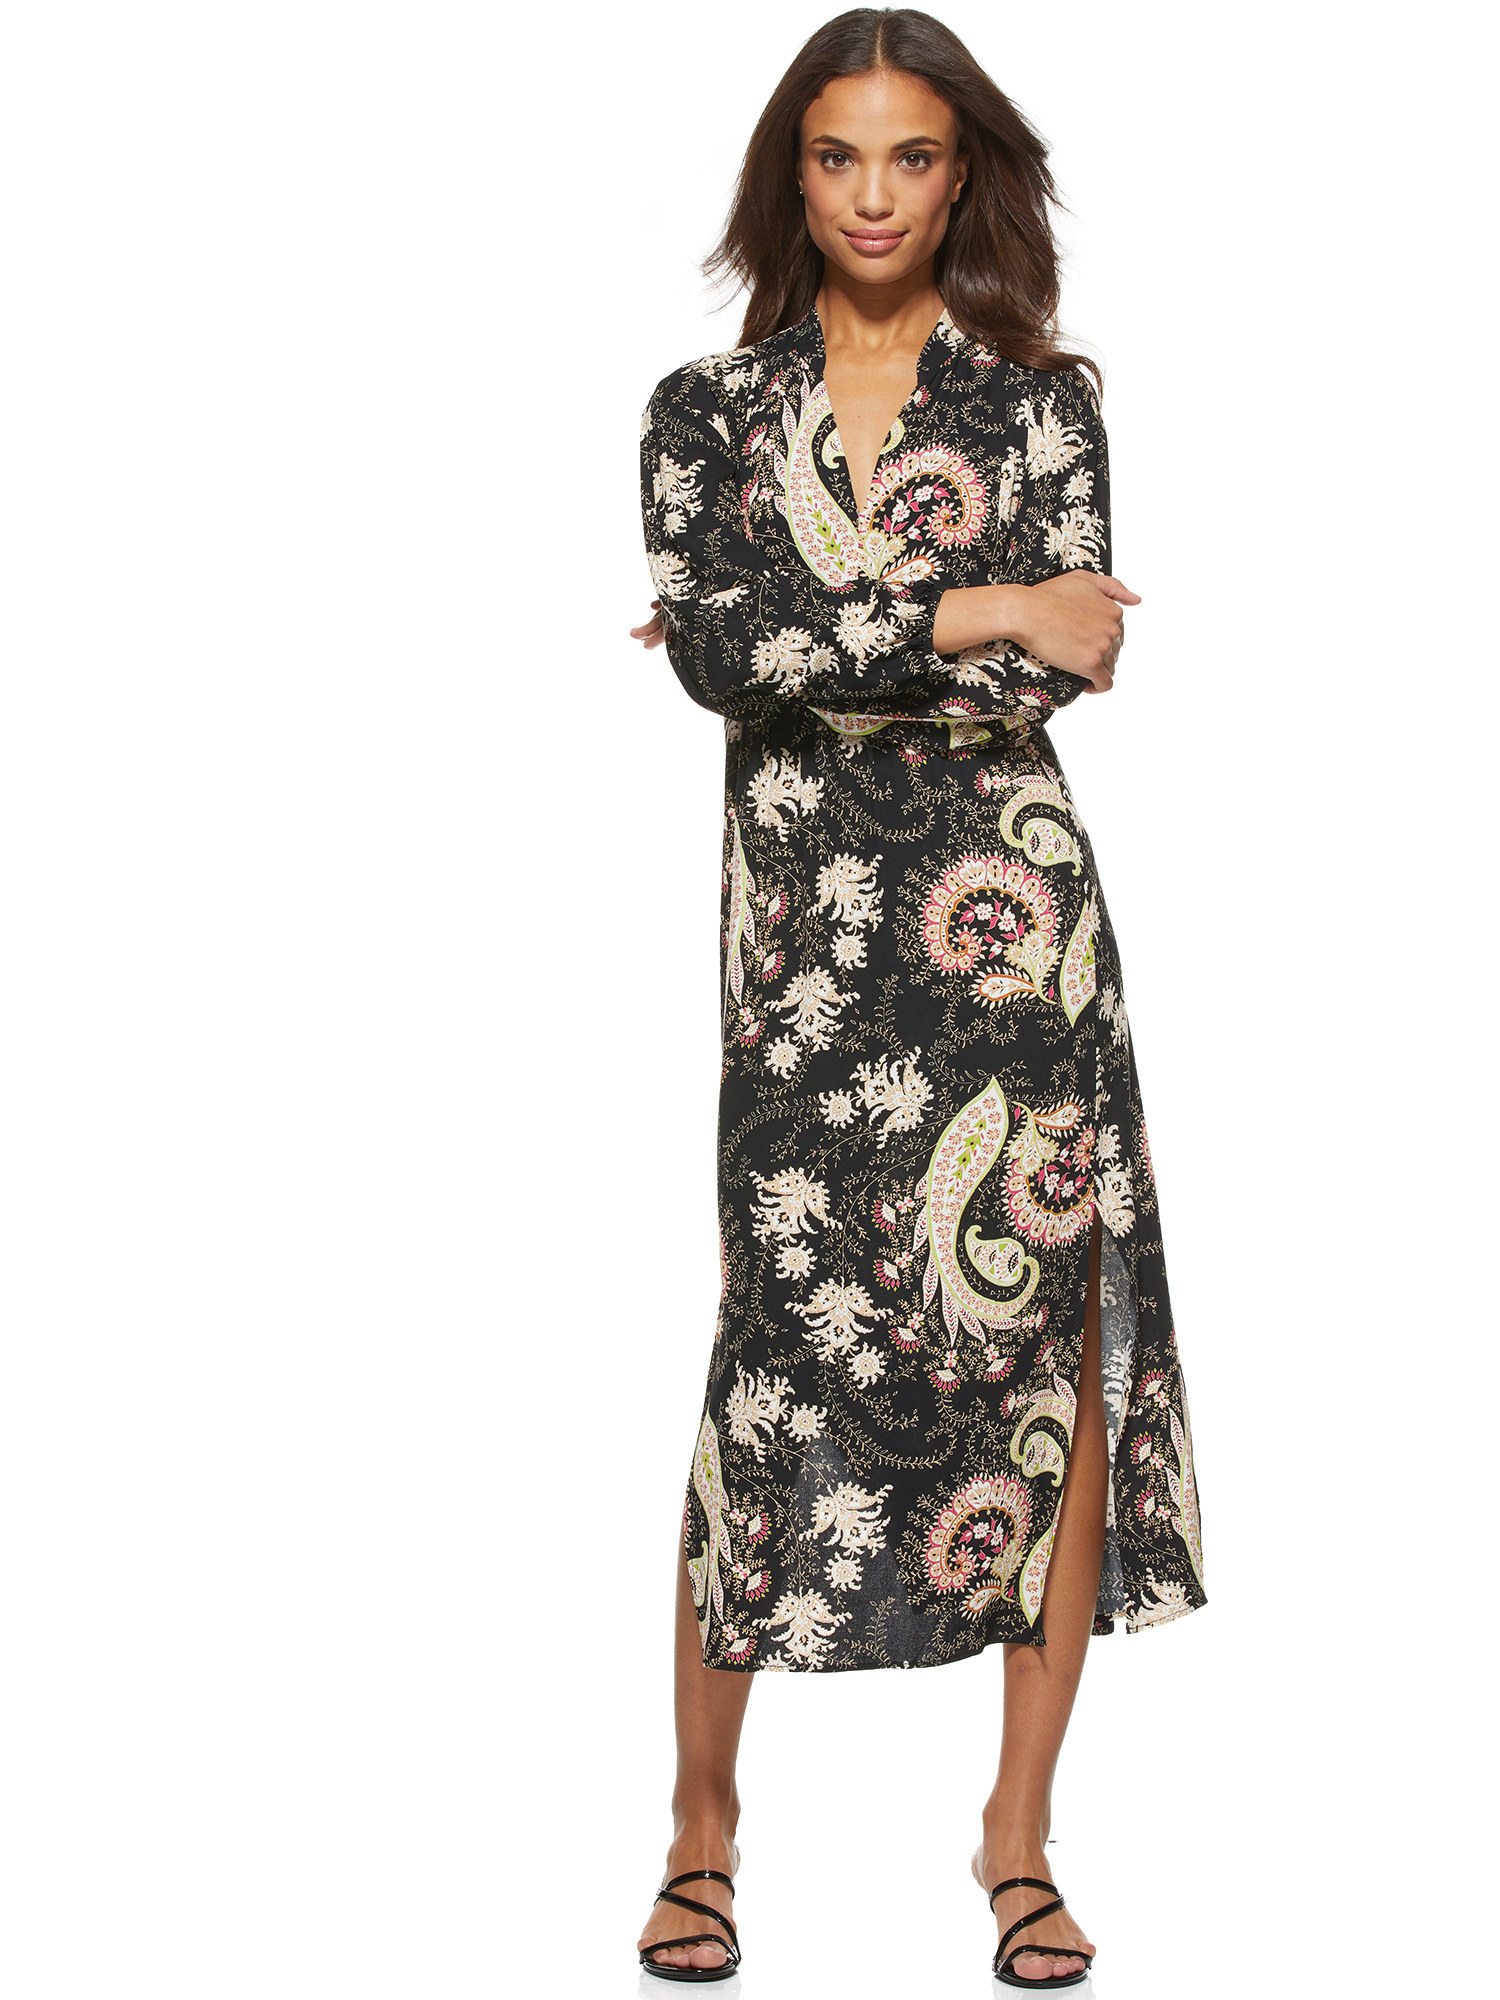 model in a black paisley midi dress with slits and long sleeves